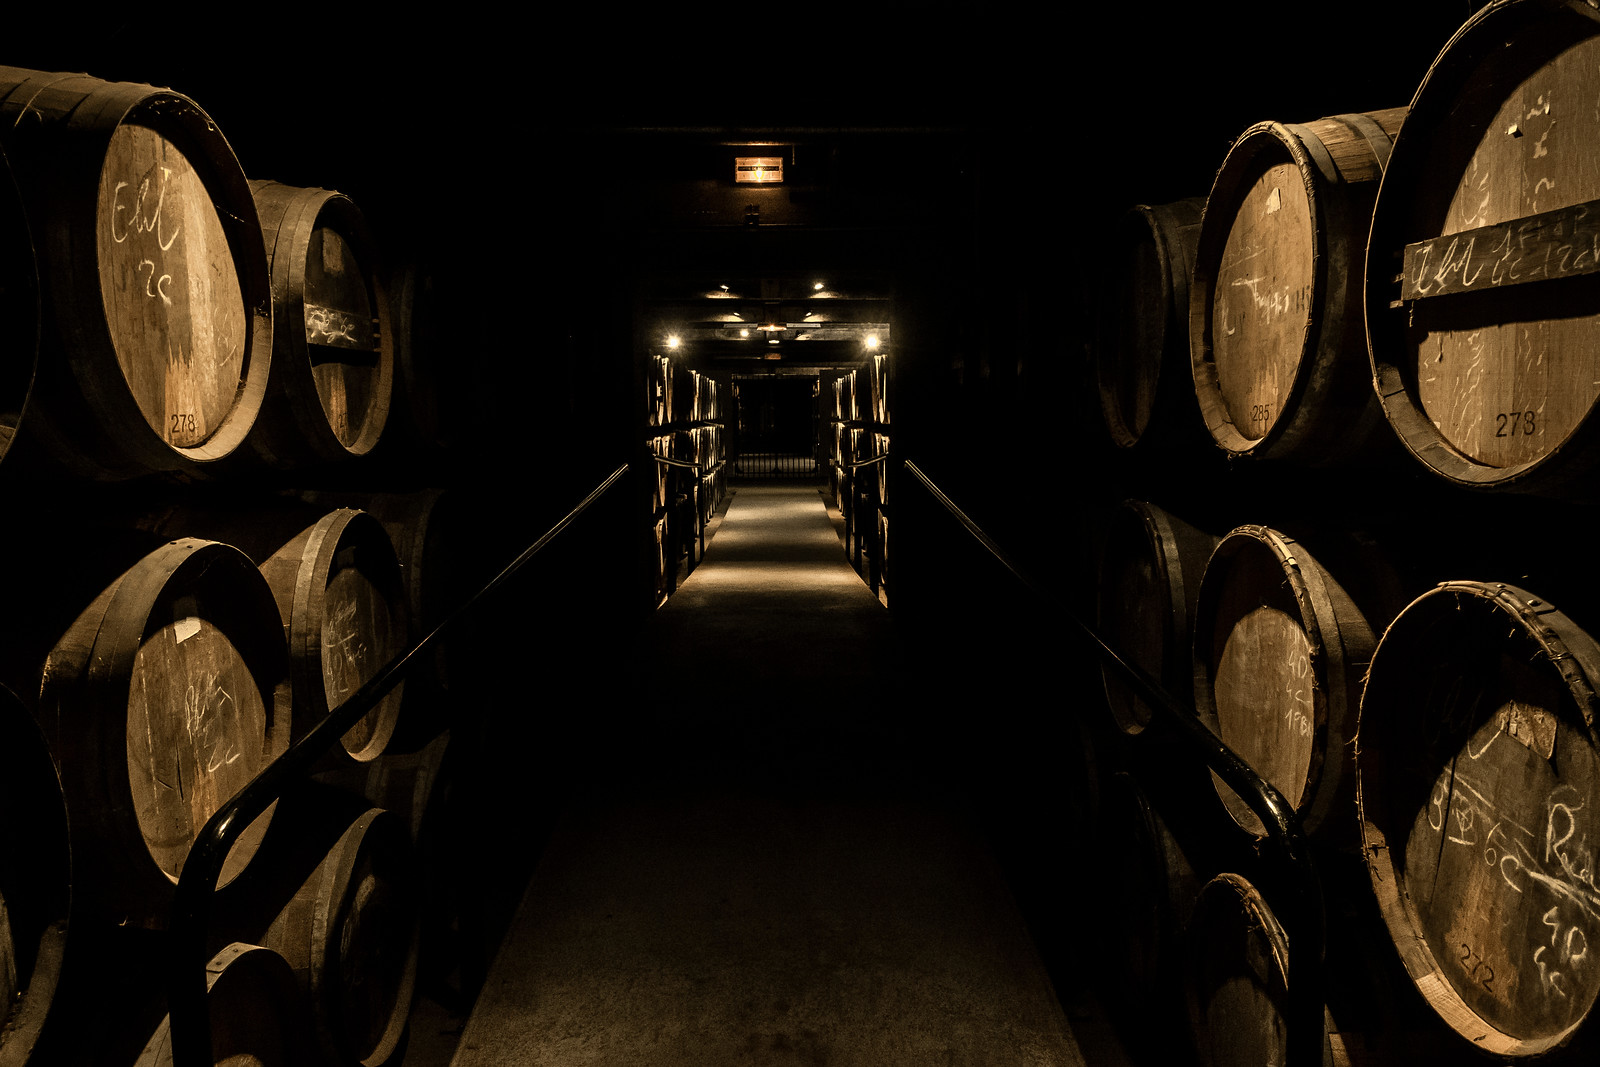 Cognac barrels stocked up in the dark cognac's ageing cellar in Cognac town, France